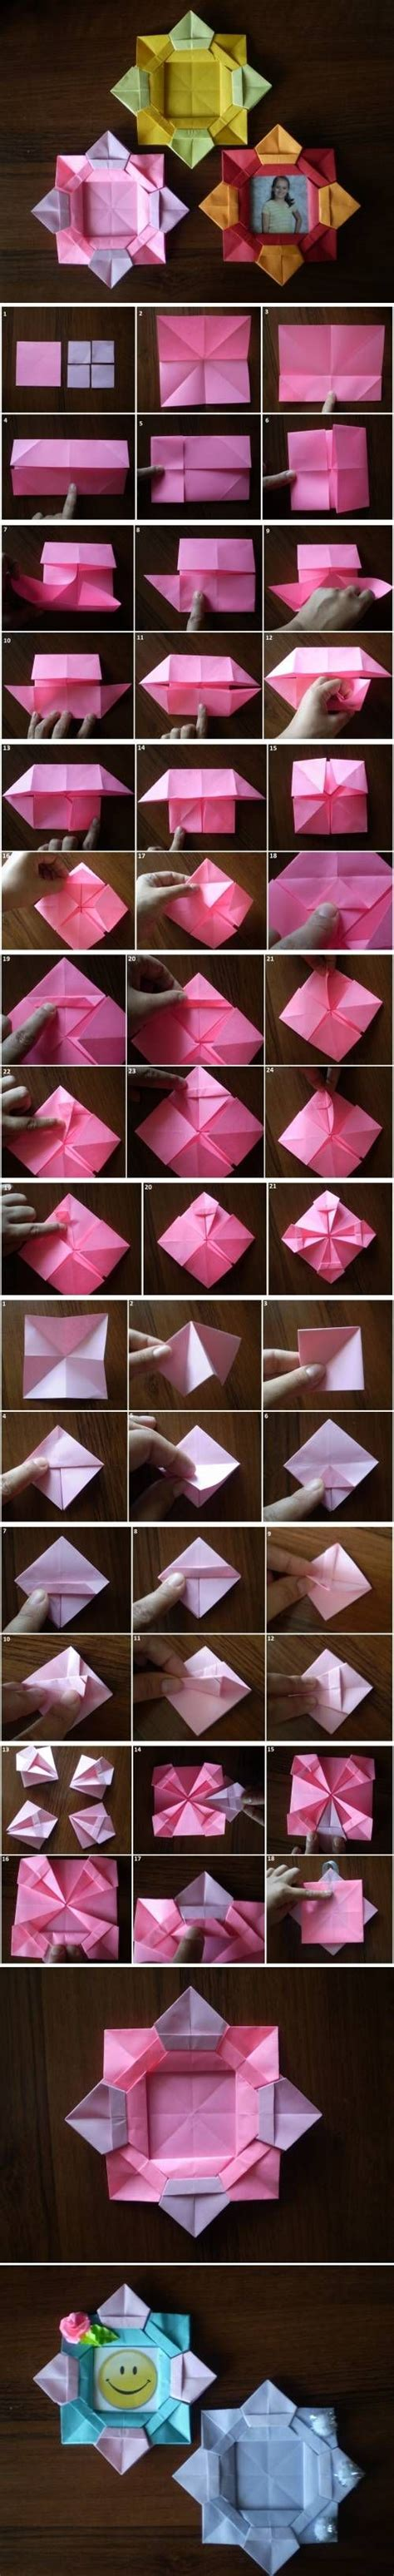 Diy Origami Flowers - how to make origami flower picture frame step by step diy